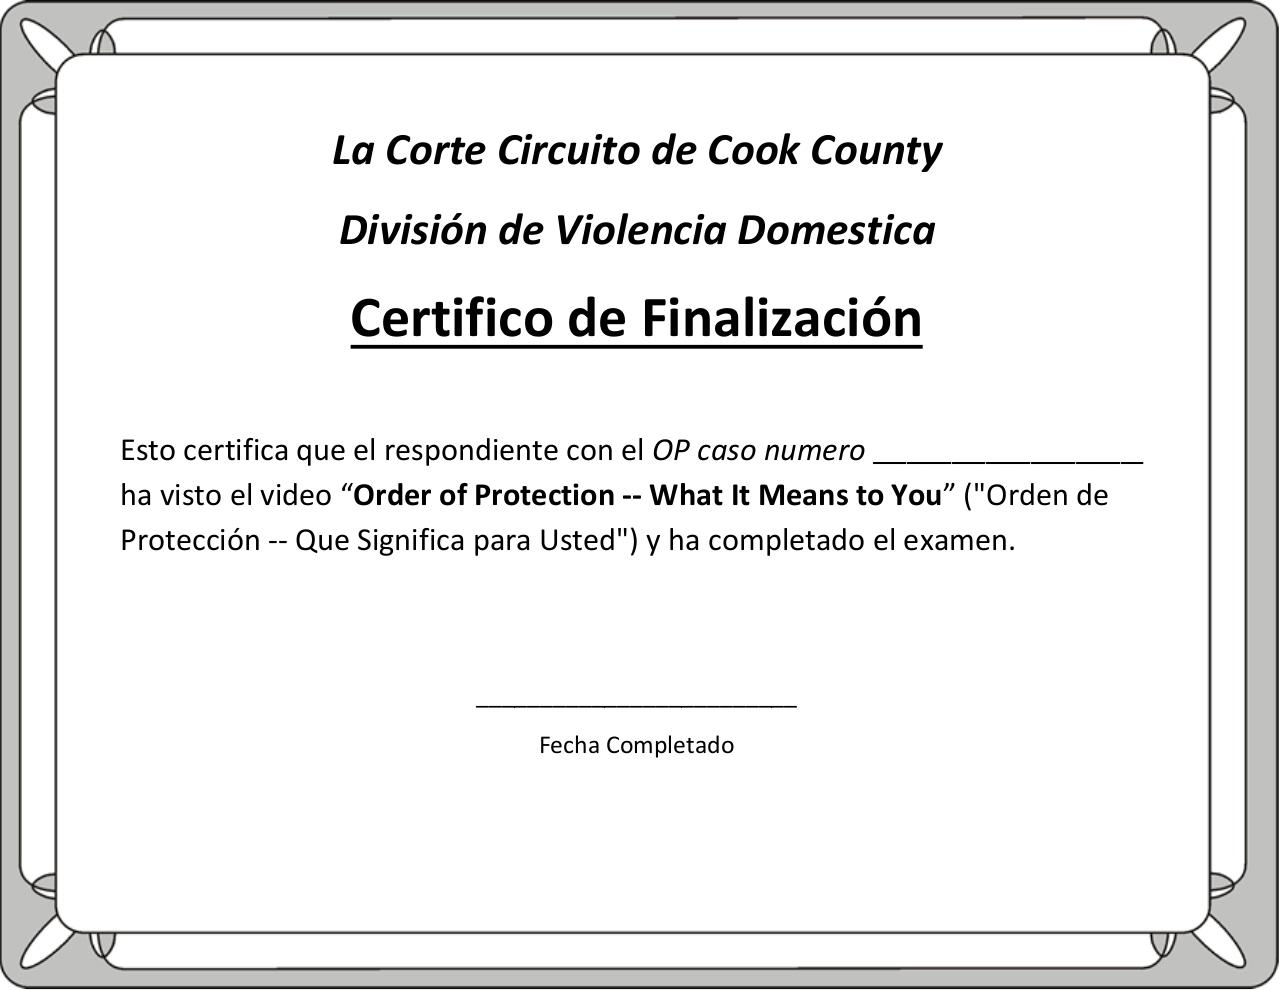 Spanish certificate of completion with print option pdf pdf archive report spam or adult content 1betcityfo Gallery